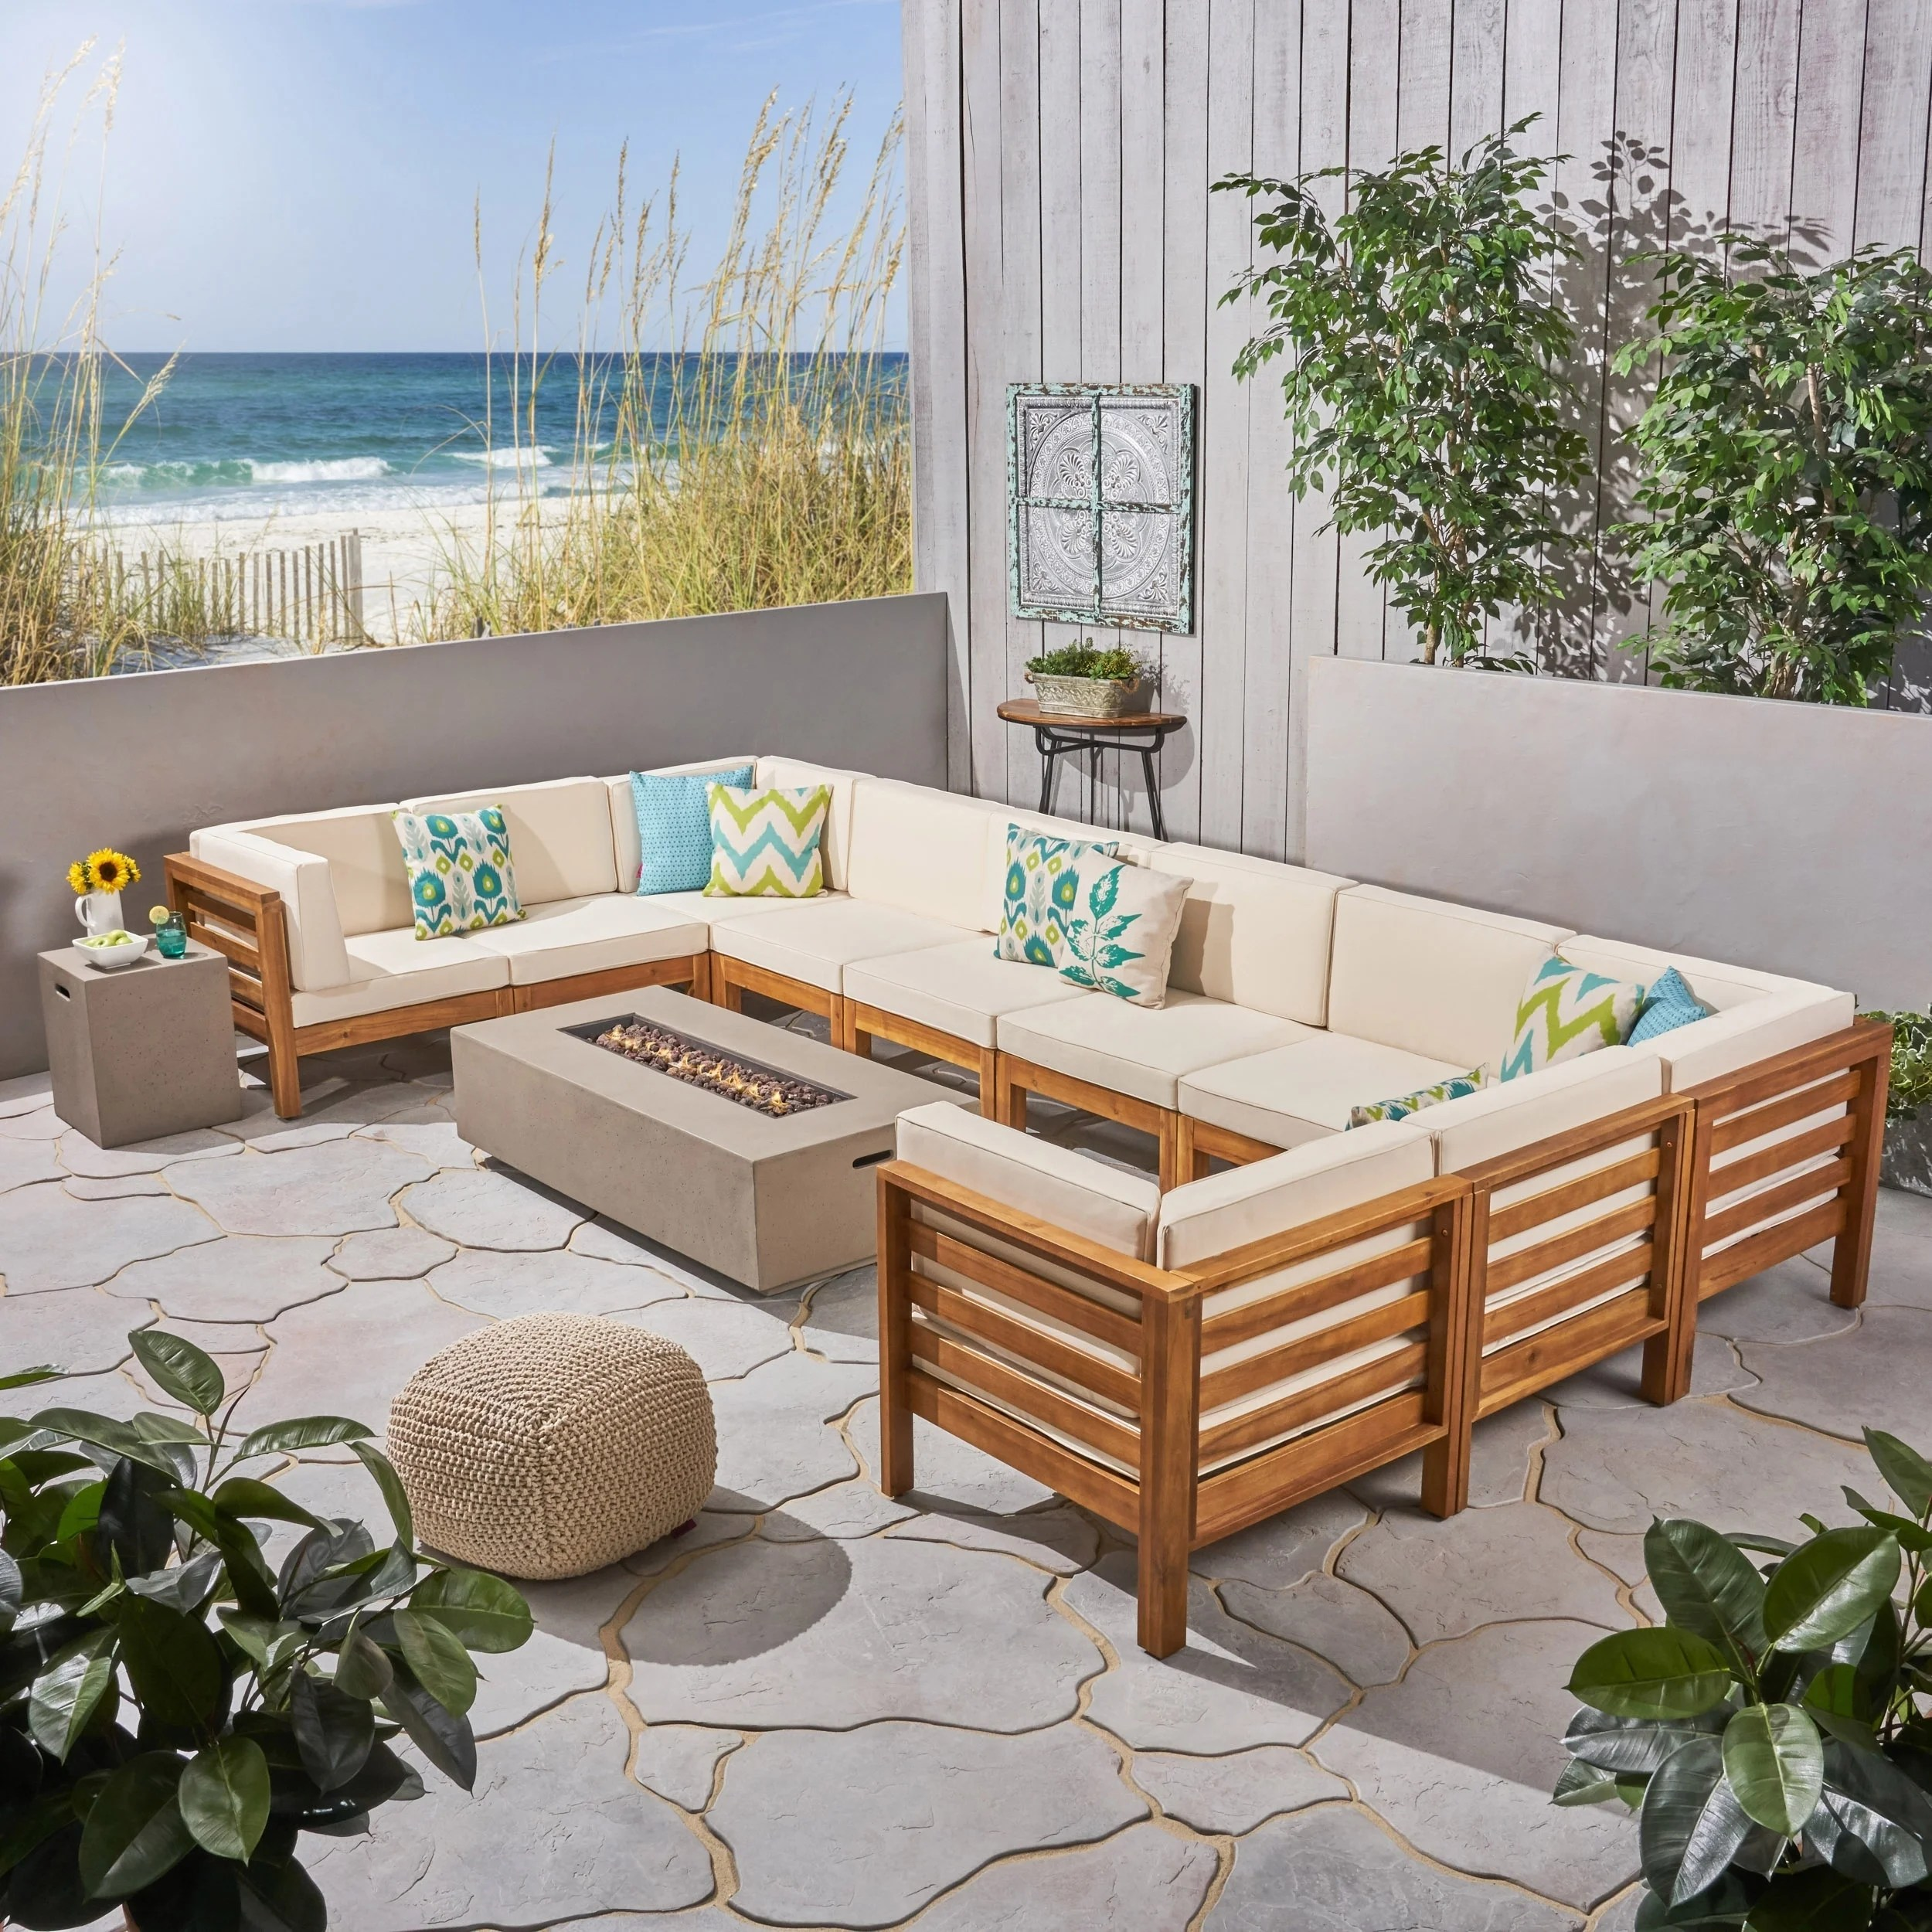 Sectional Furniture Outdoor Amazon Peach Tree 7 Pcs Outdoor Patio